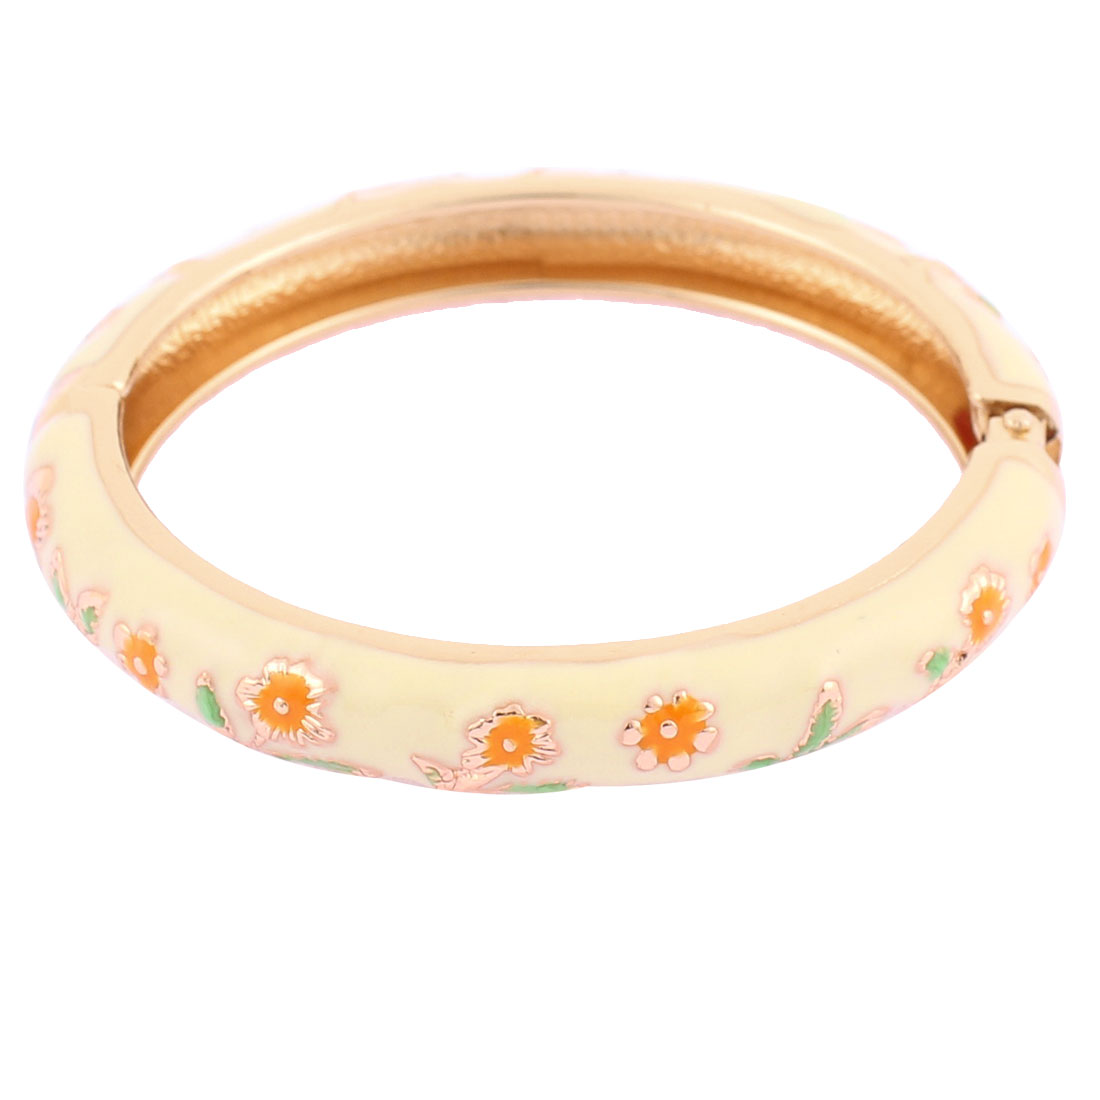 Girls Spring Closure Flower Decor Round Wrist Ornament Bracelet Bangle